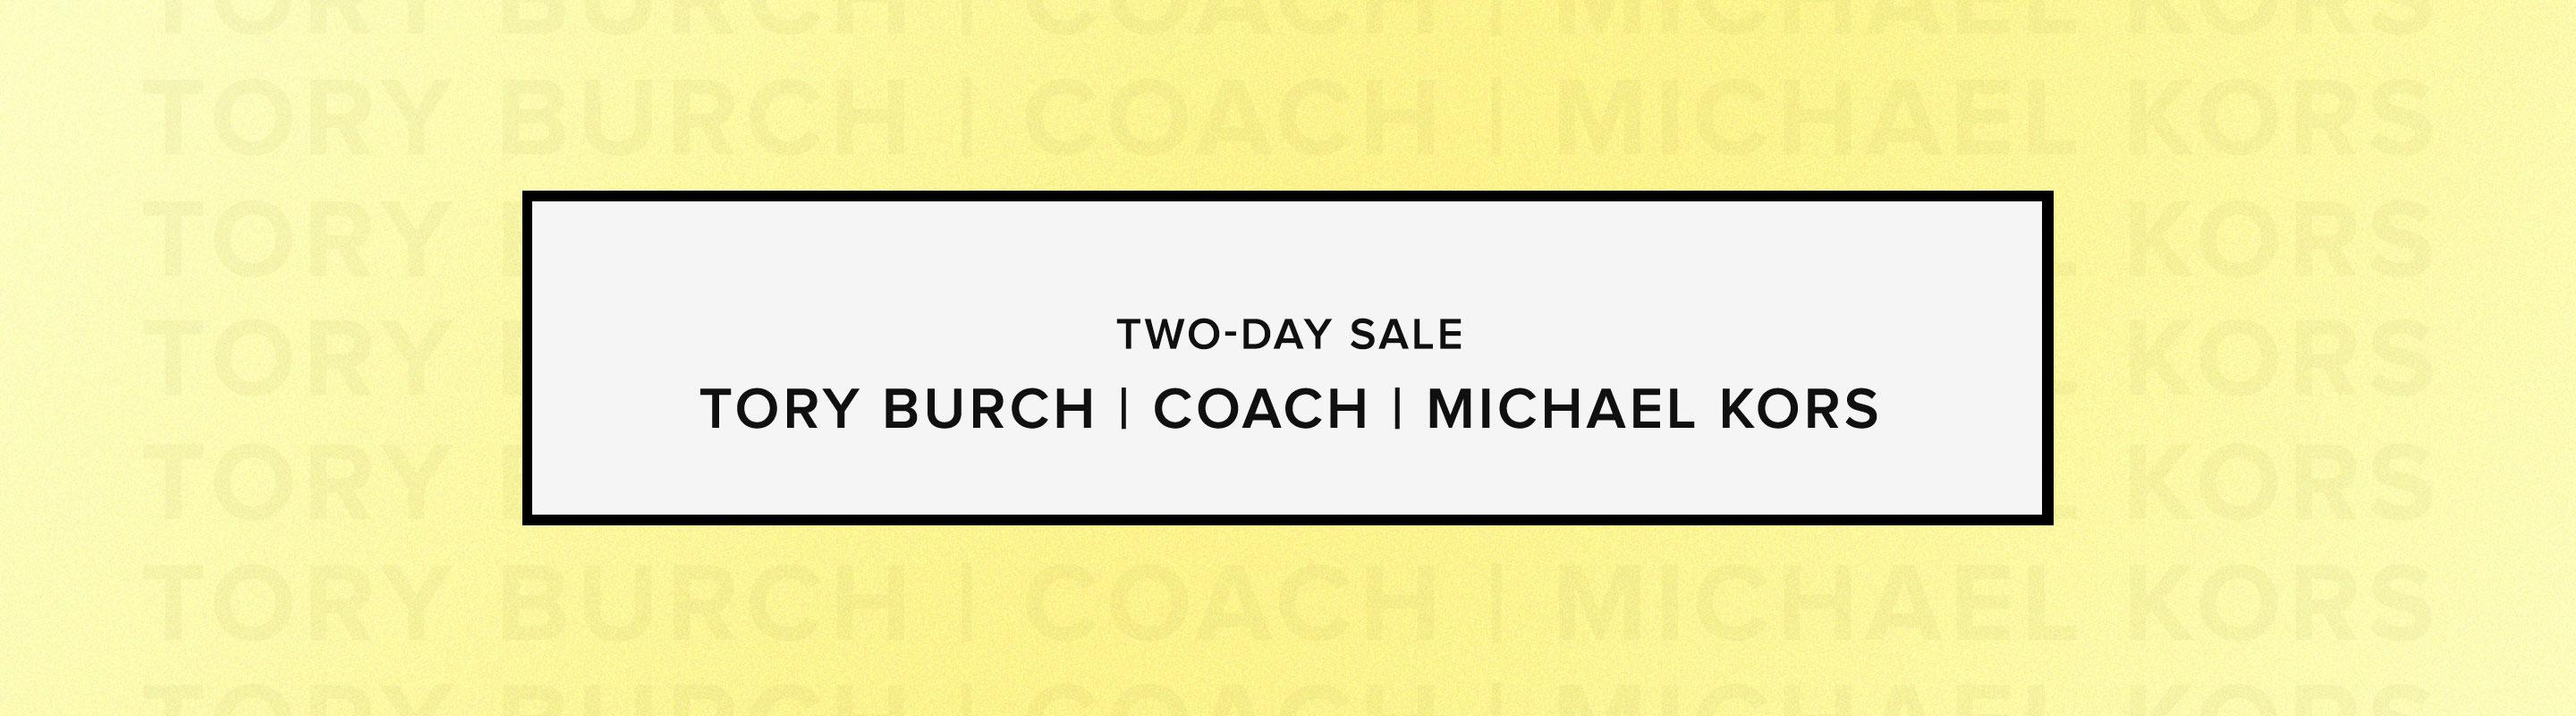 Two-Day Sale: Tory Burch, Coach, Michael Kors